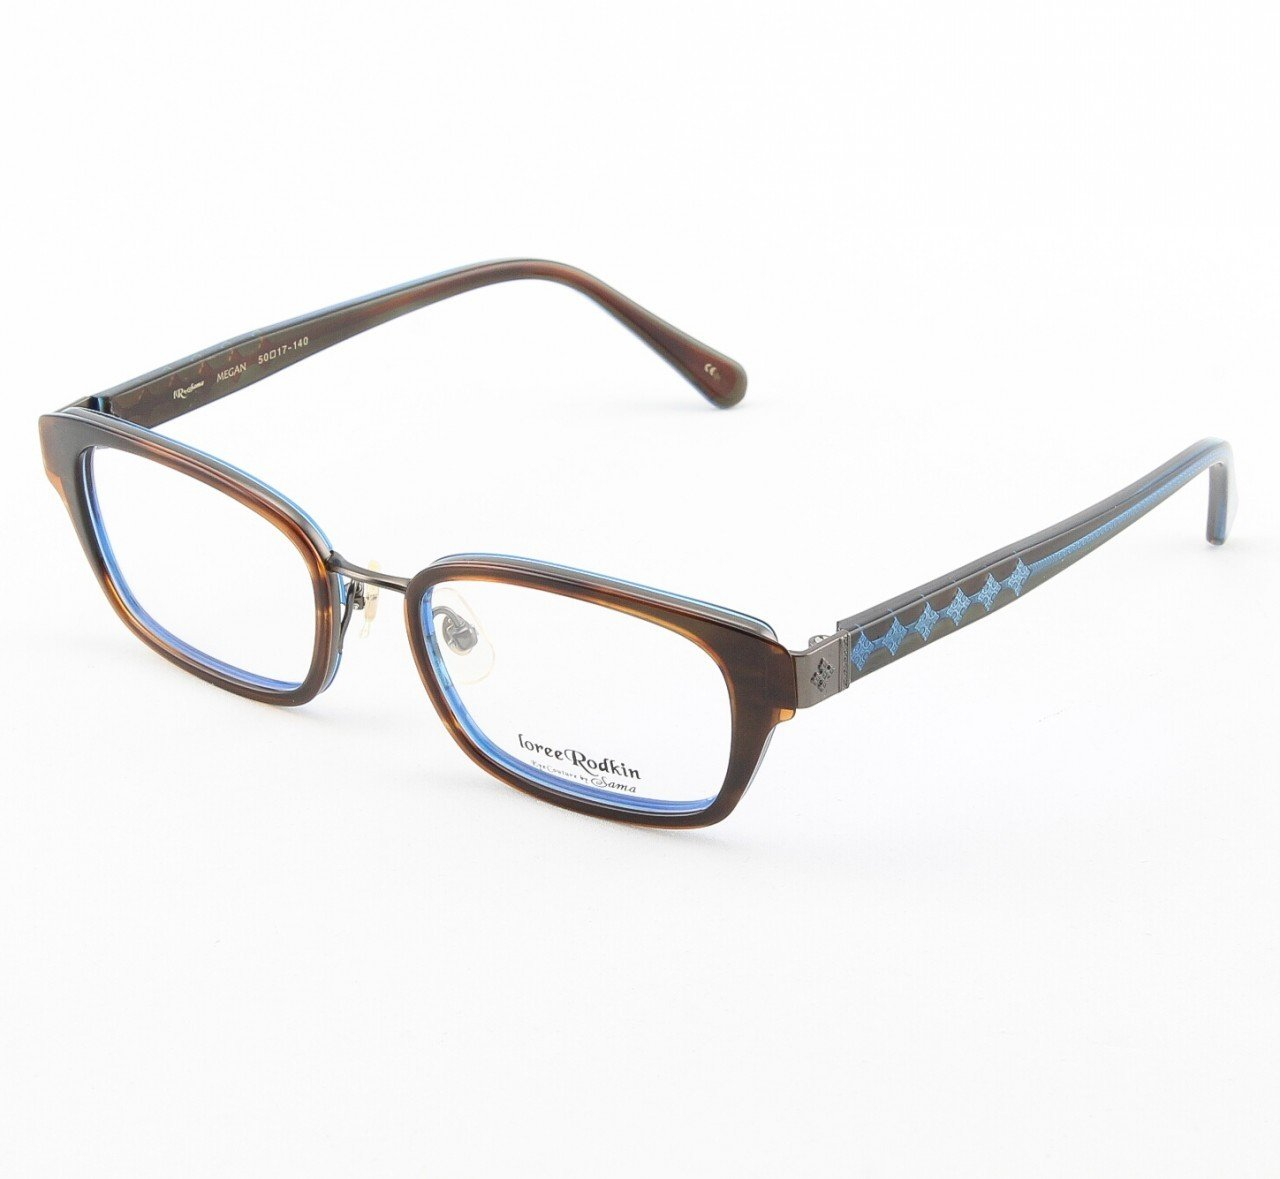 Loree Rodkin Megan Eyeglasses Brown and Blue w/ Clear Lenses, Plastic Inserts Decorative Temple Core